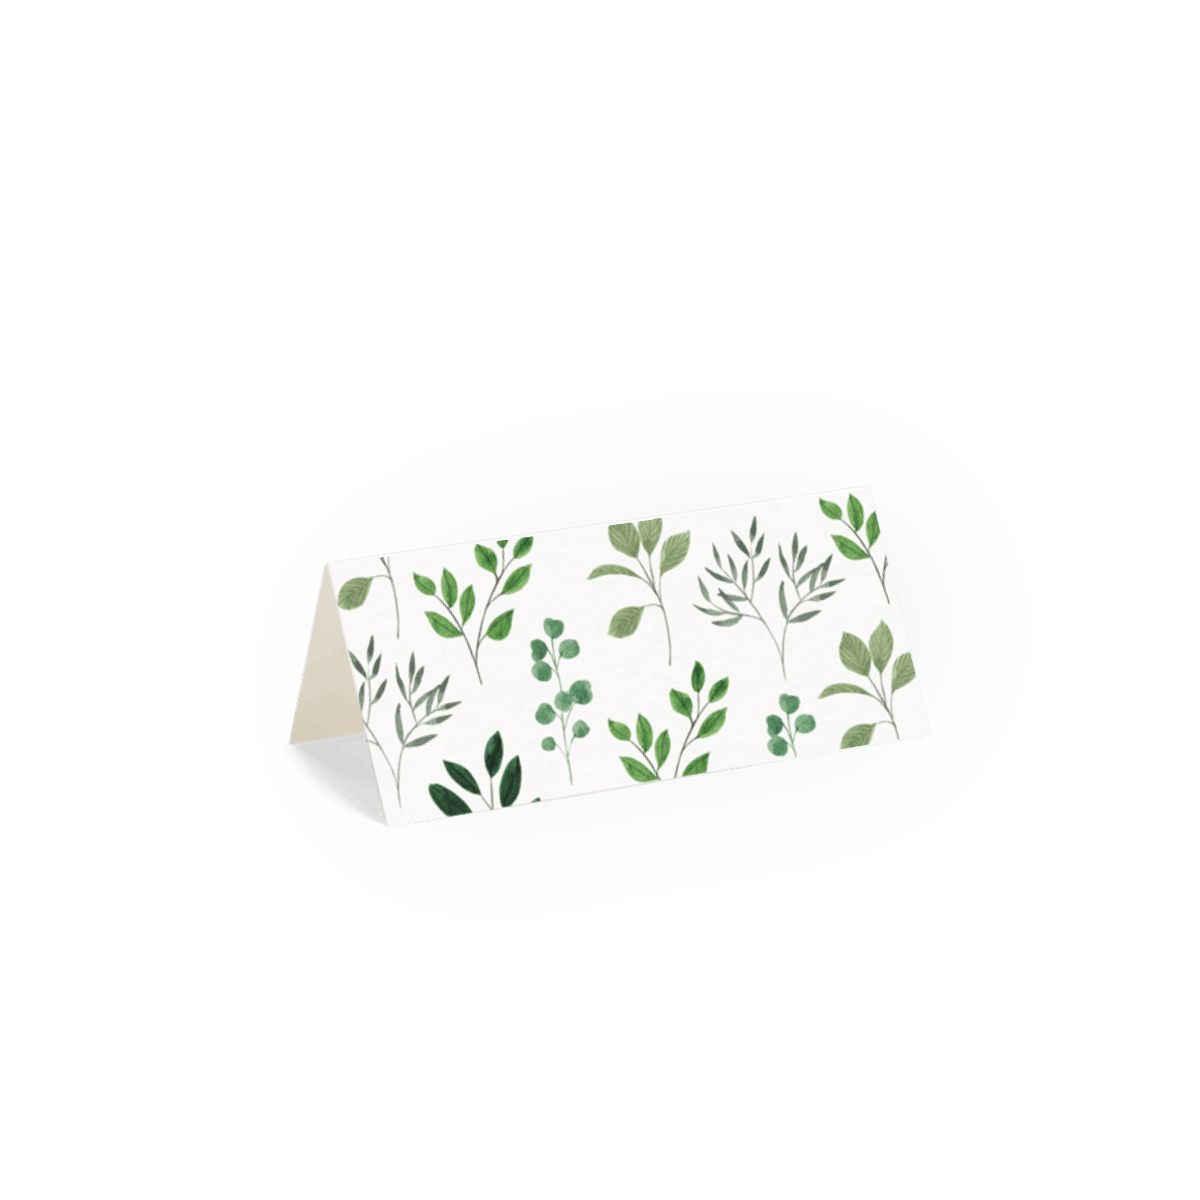 Https%3a%2f%2fwww.papier.com%2fproduct image%2f81123%2f15%2fgreenery study 19404 ruckseite 1561630247.png?ixlib=rb 1.1